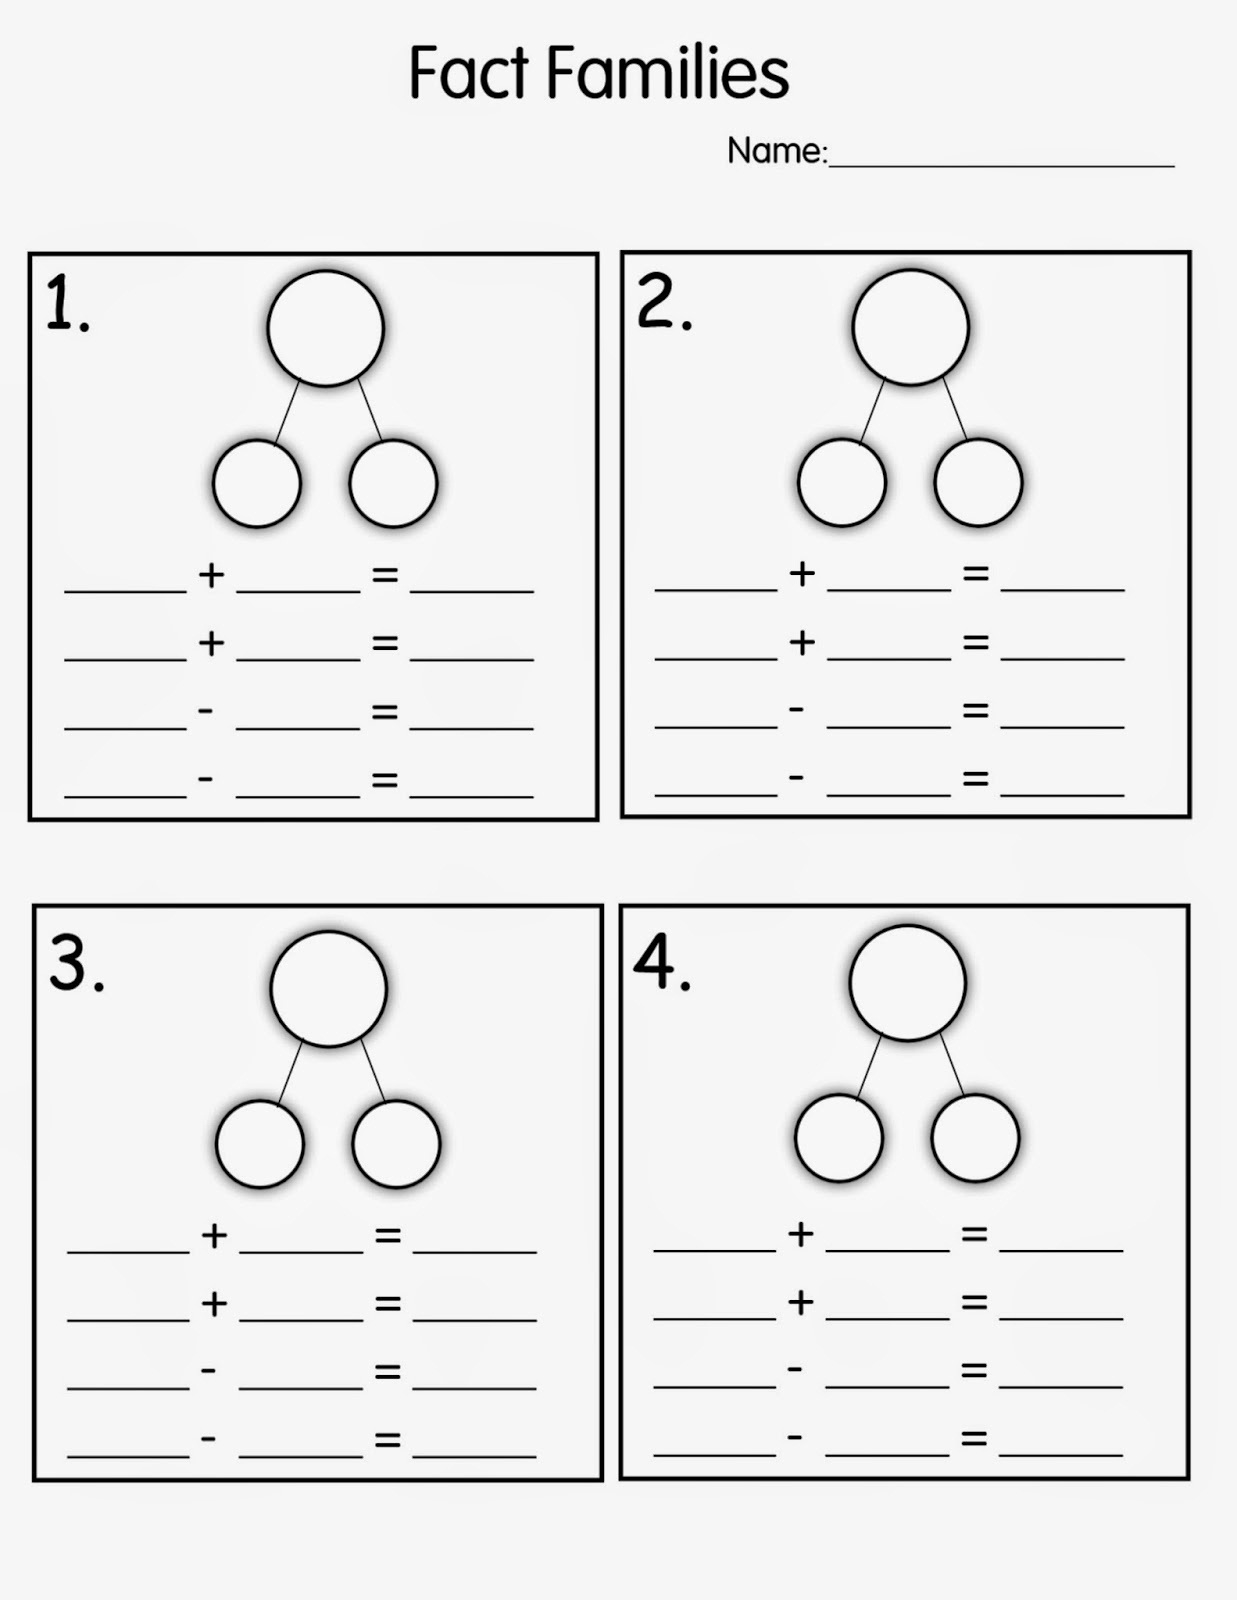 fact-family-worksheets-1st-grade-blank